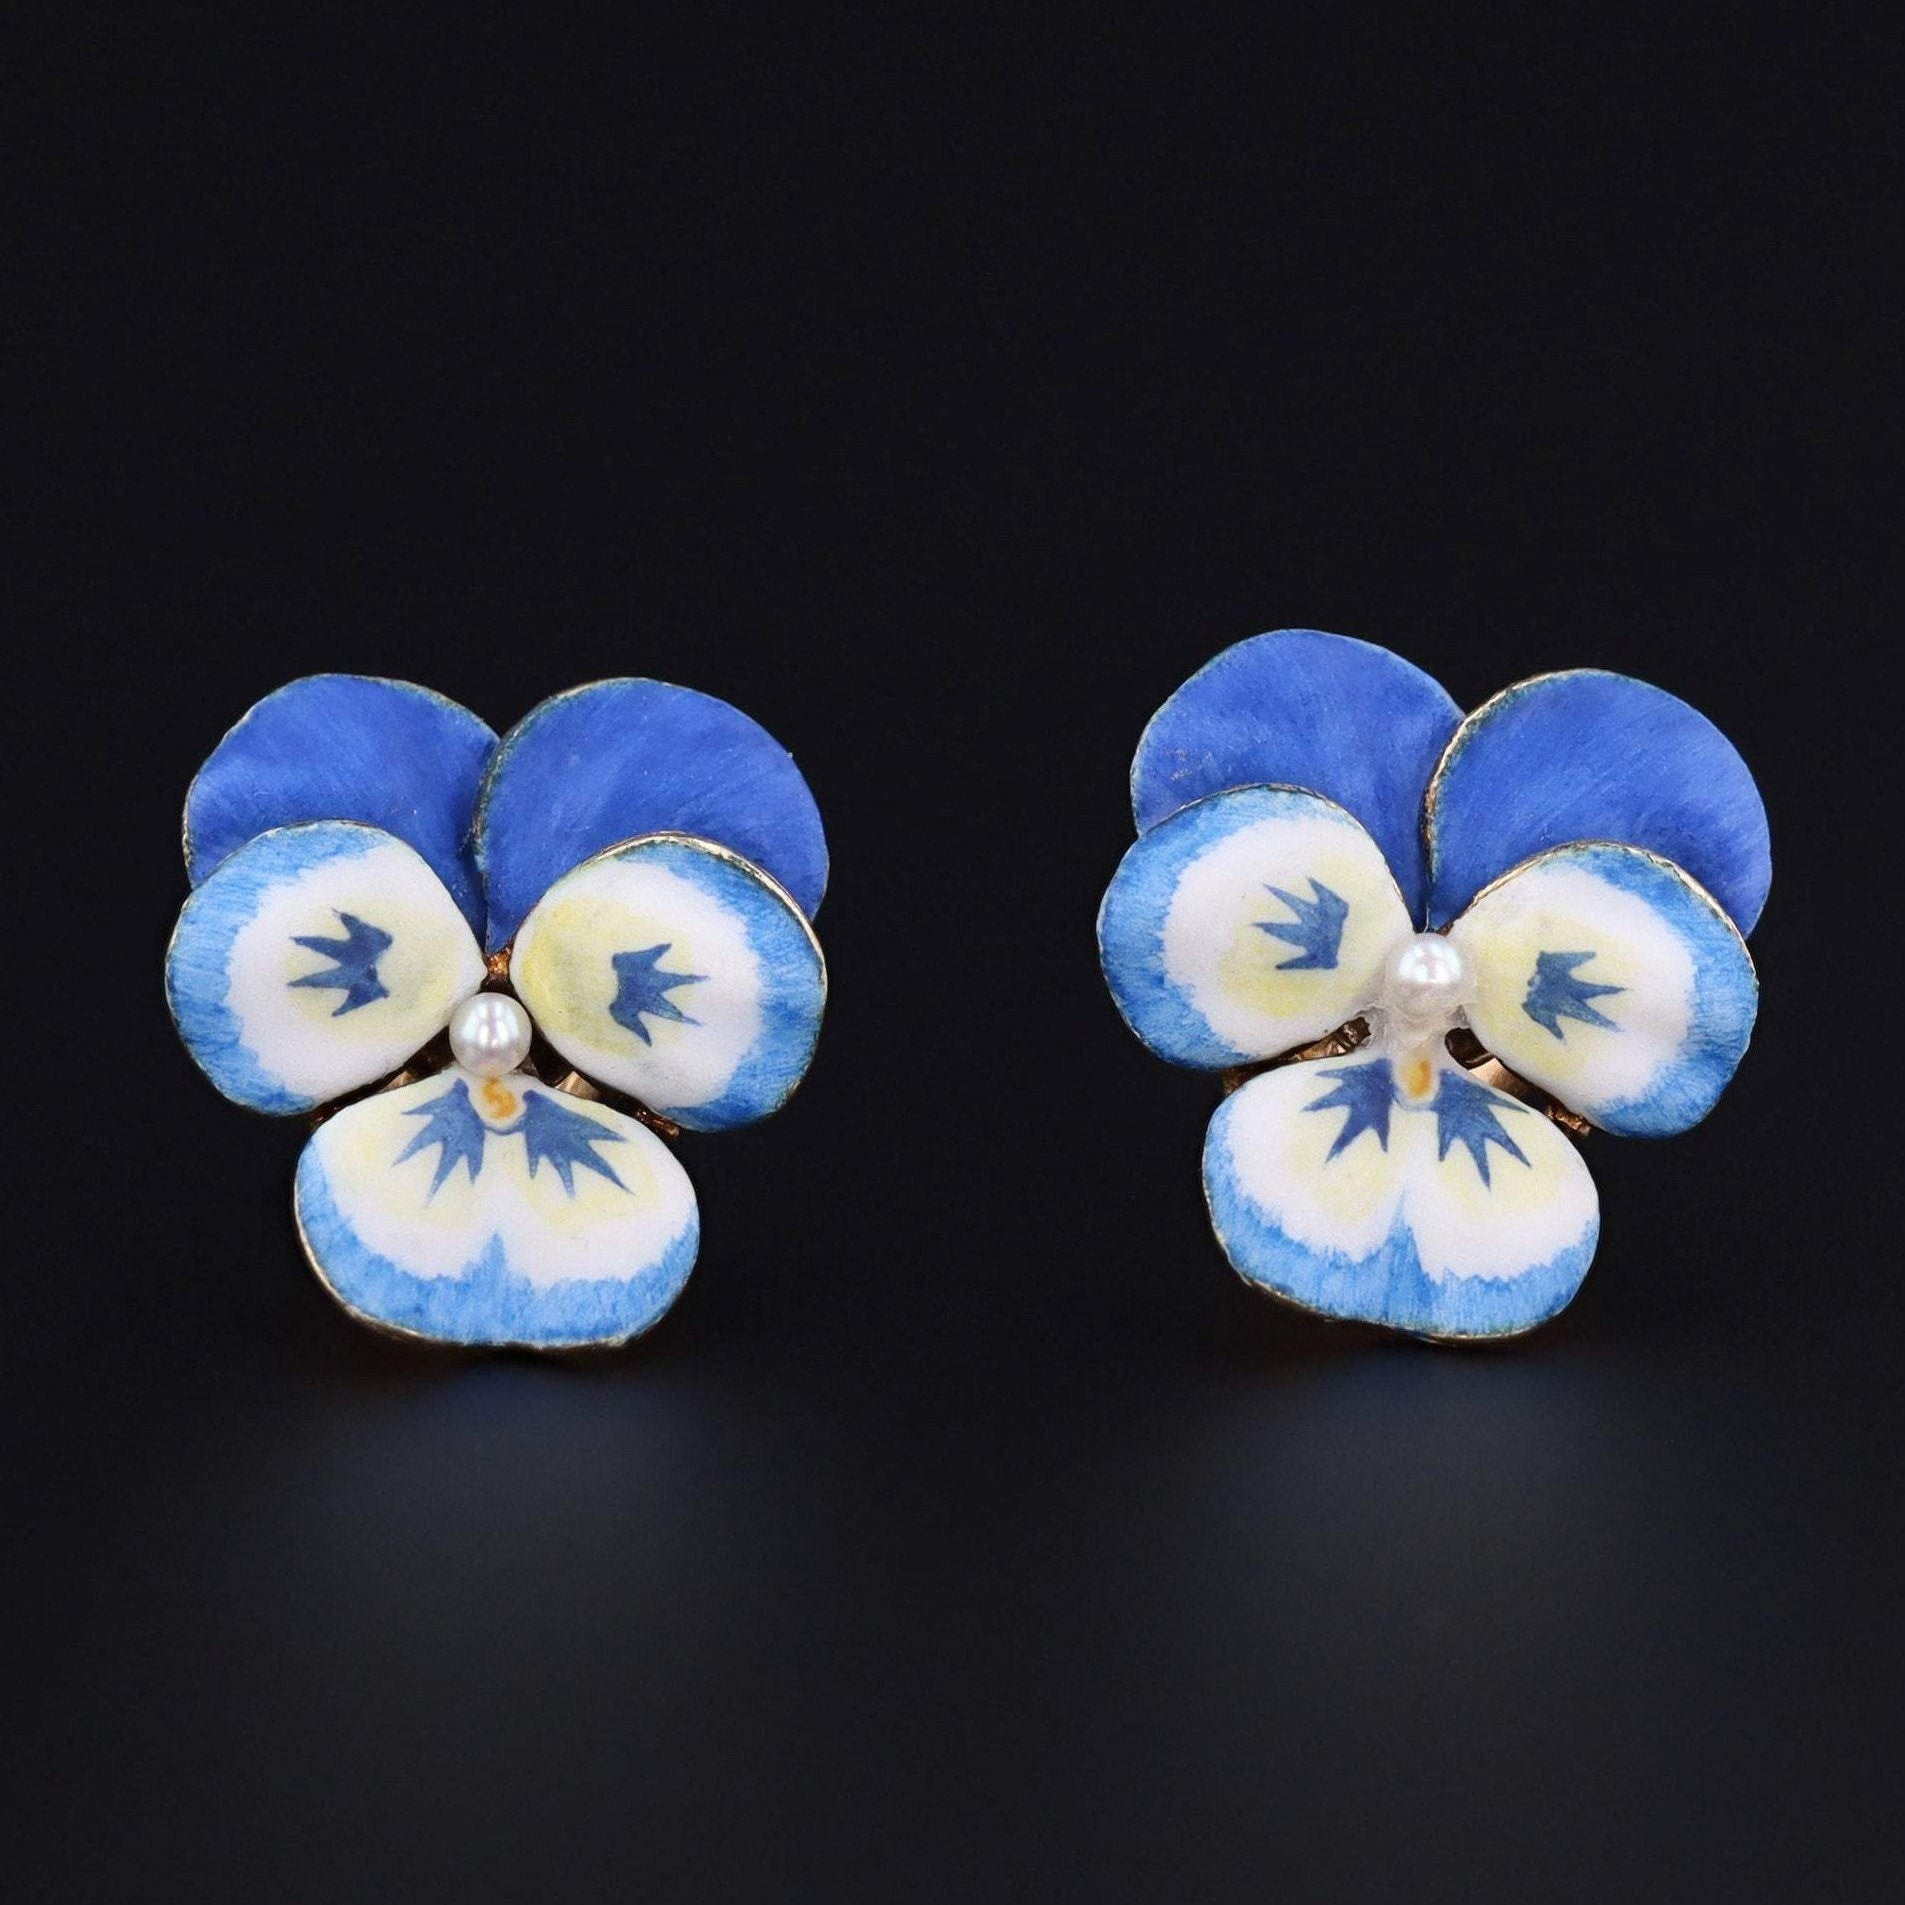 Vintage Pansy Earrings | 14k Gold & Enamel Pansy Earrings | 14k Gold Flower Earrings | 14k Gold Earrings | Blue Pansy Earrings